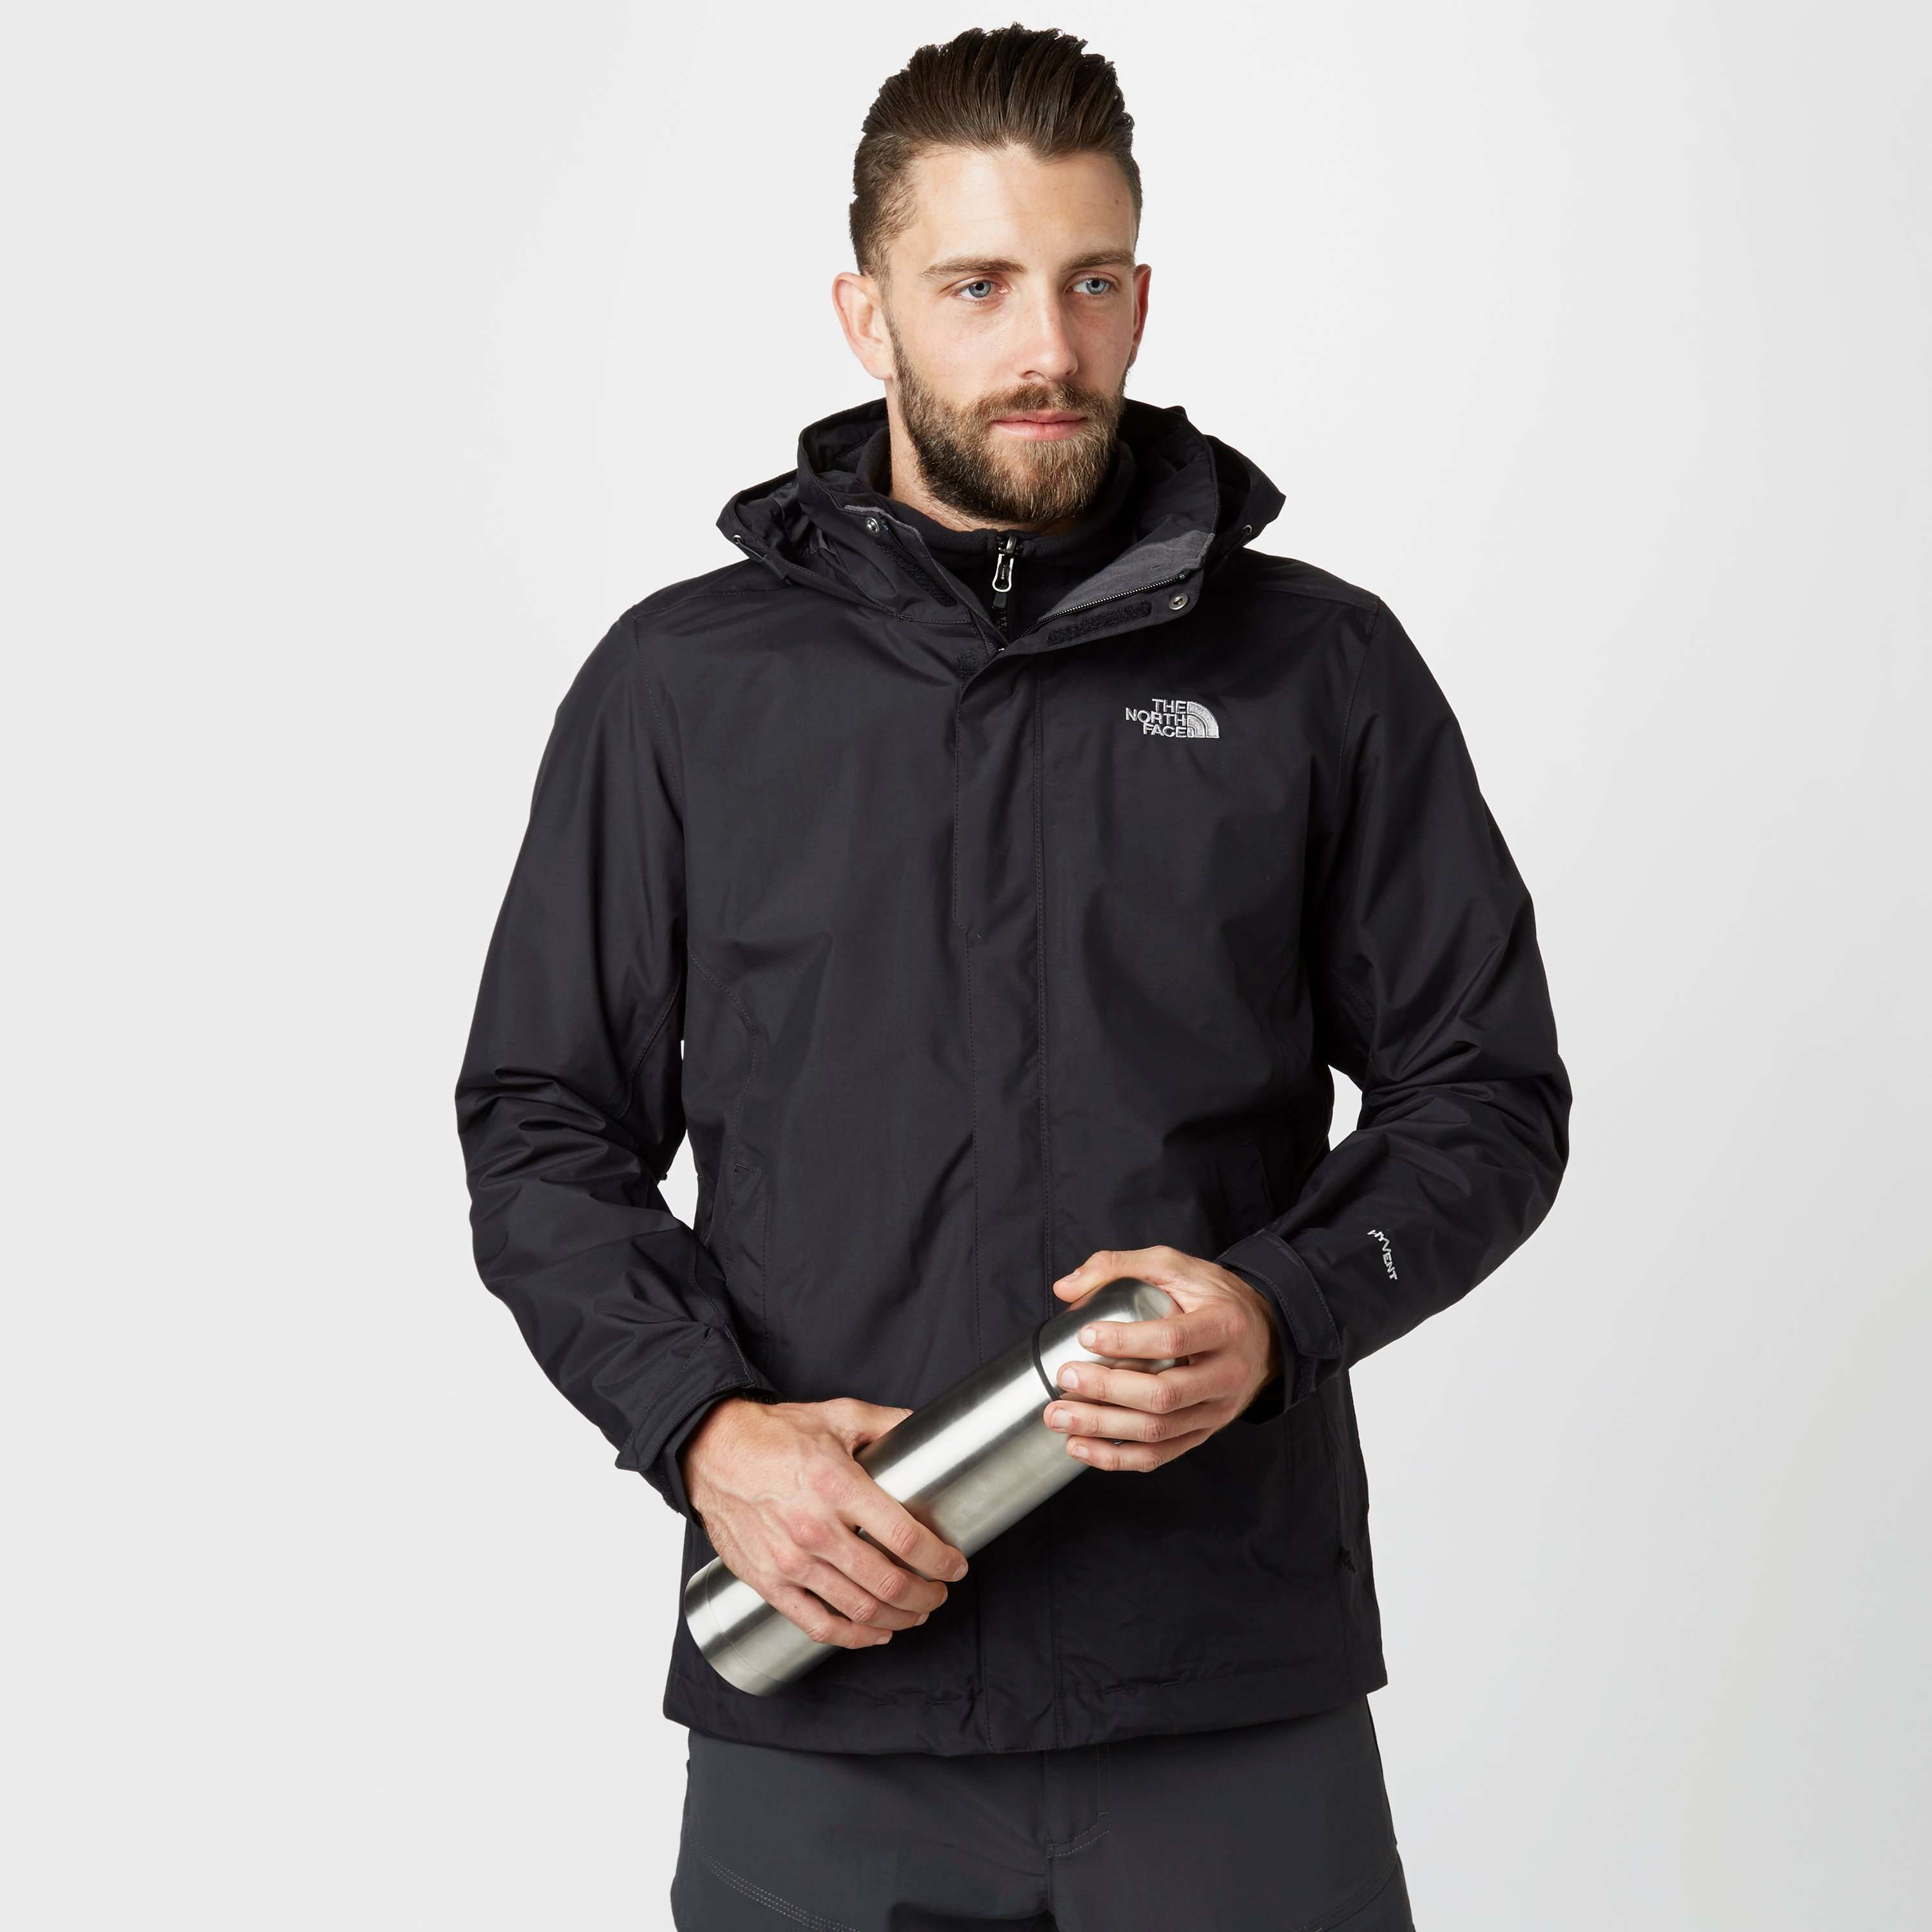 The North Face Men S Evolution Ii Triclimate 3 In 1 Hyvent Jacket Find Out More On Our Site Shop Onlin North Face Mens Triclimate Jacket Versatile Jackets [ 3000 x 3000 Pixel ]